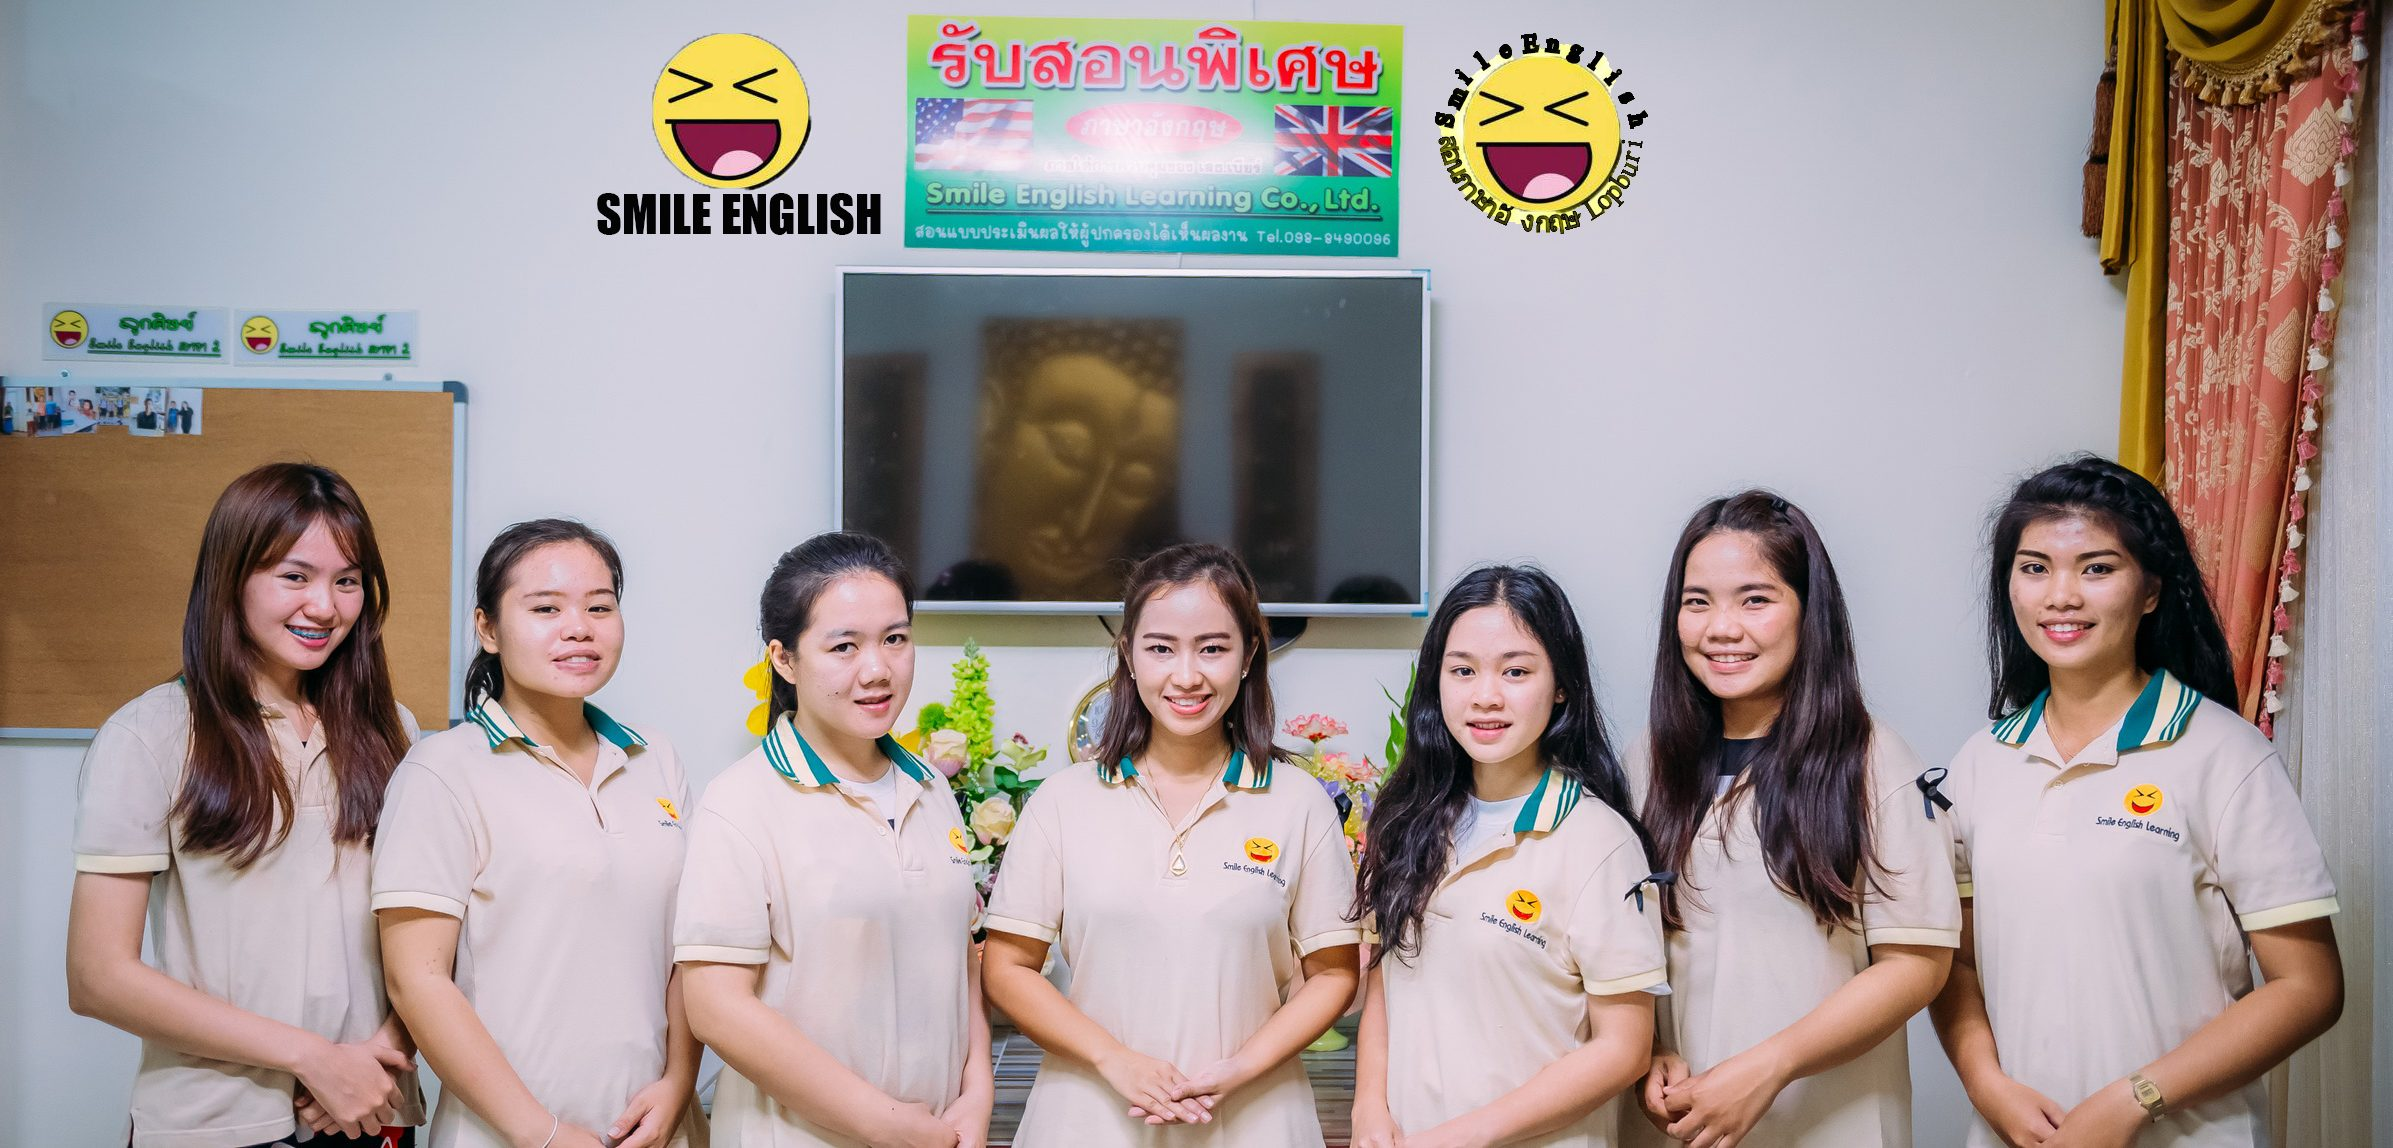 Welcome to Smile English Learning